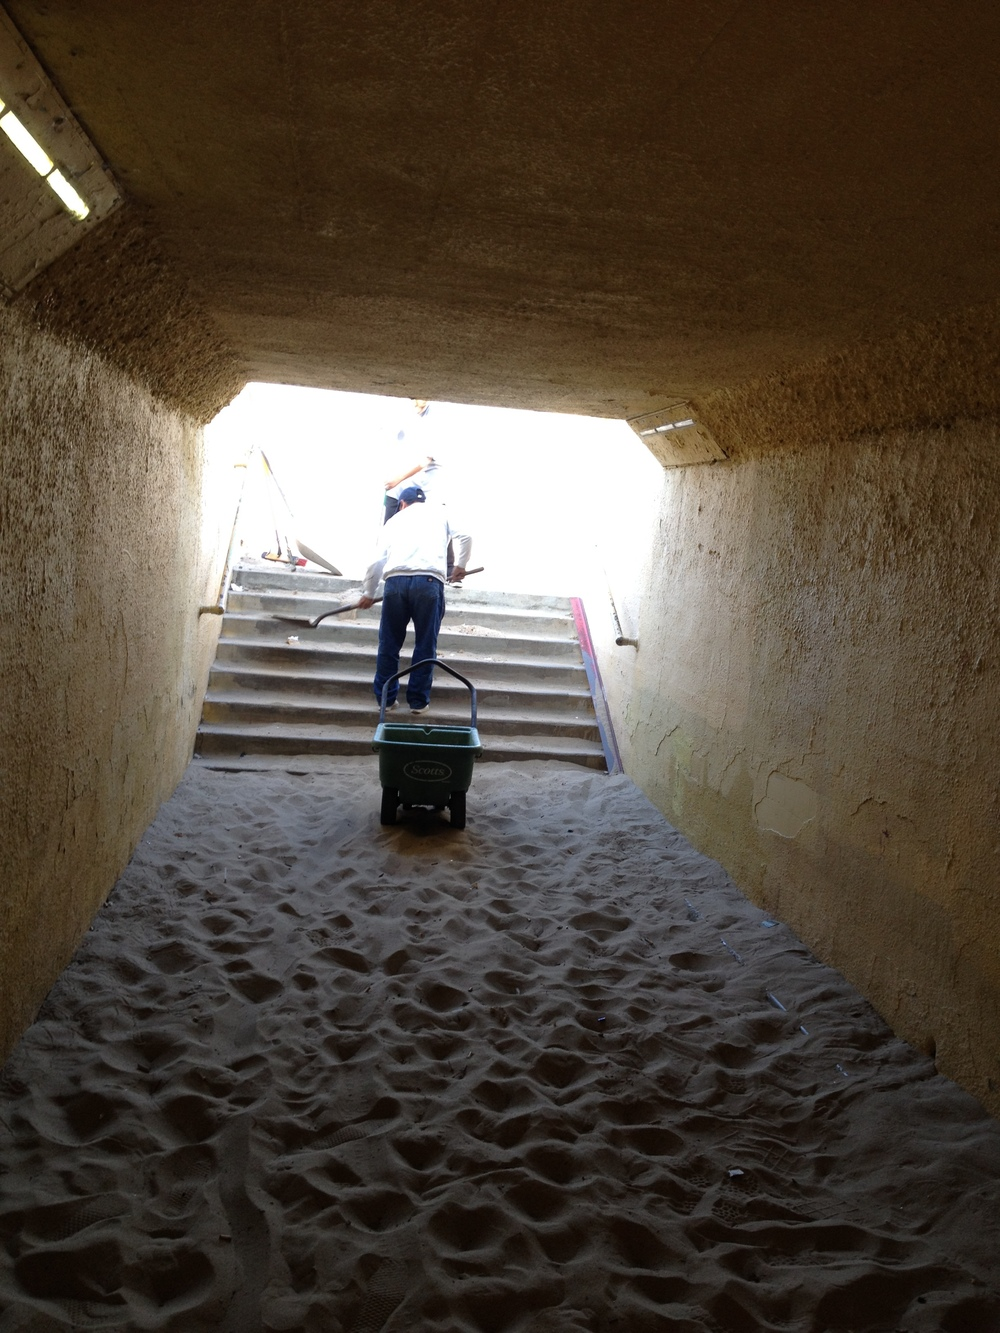 Sand gets carted up steps to beach